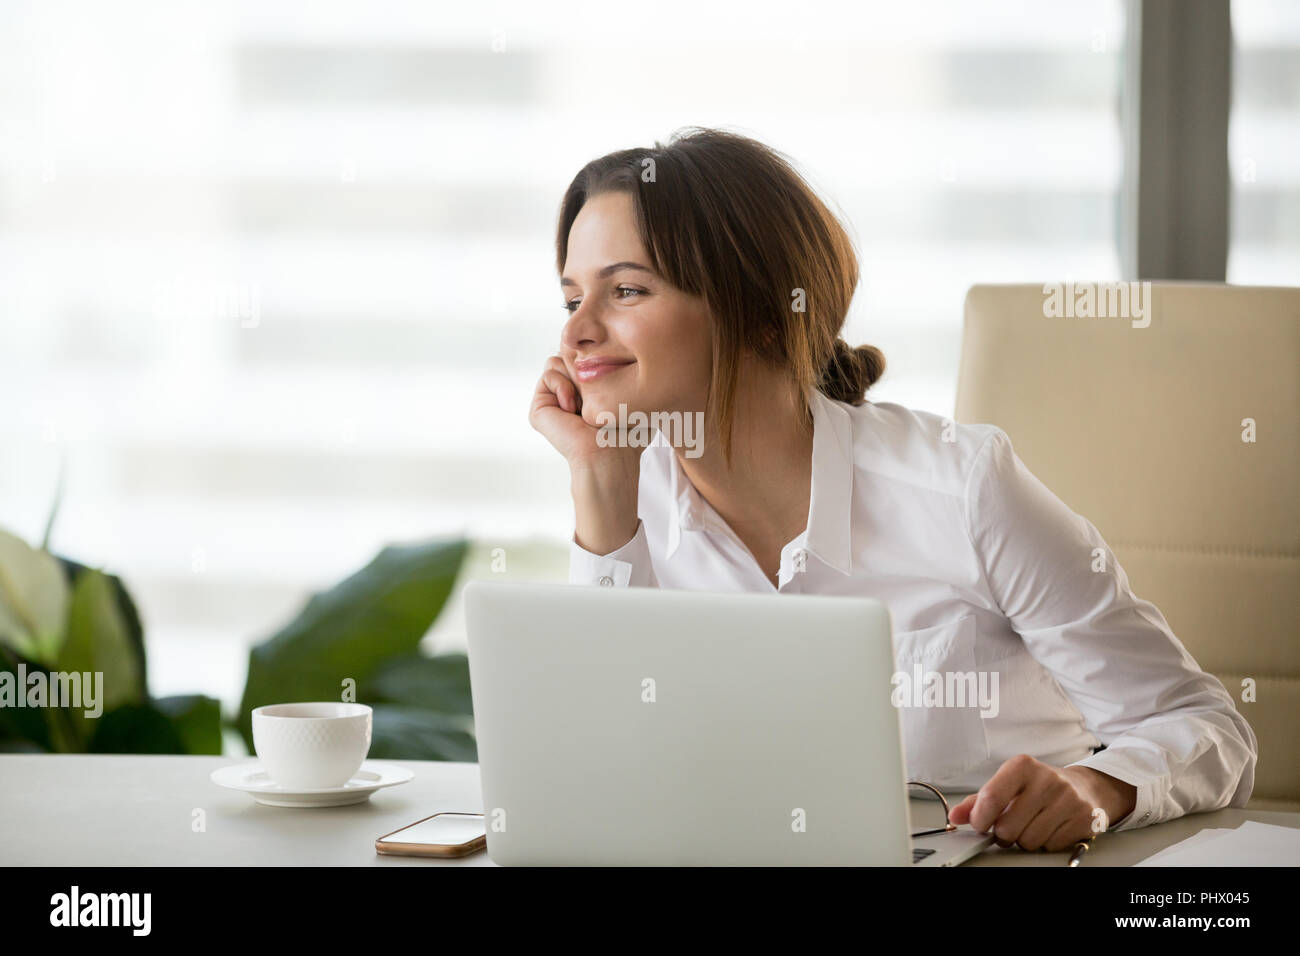 Smiling happy businesswoman feeling motivated dreaming about fut - Stock Image